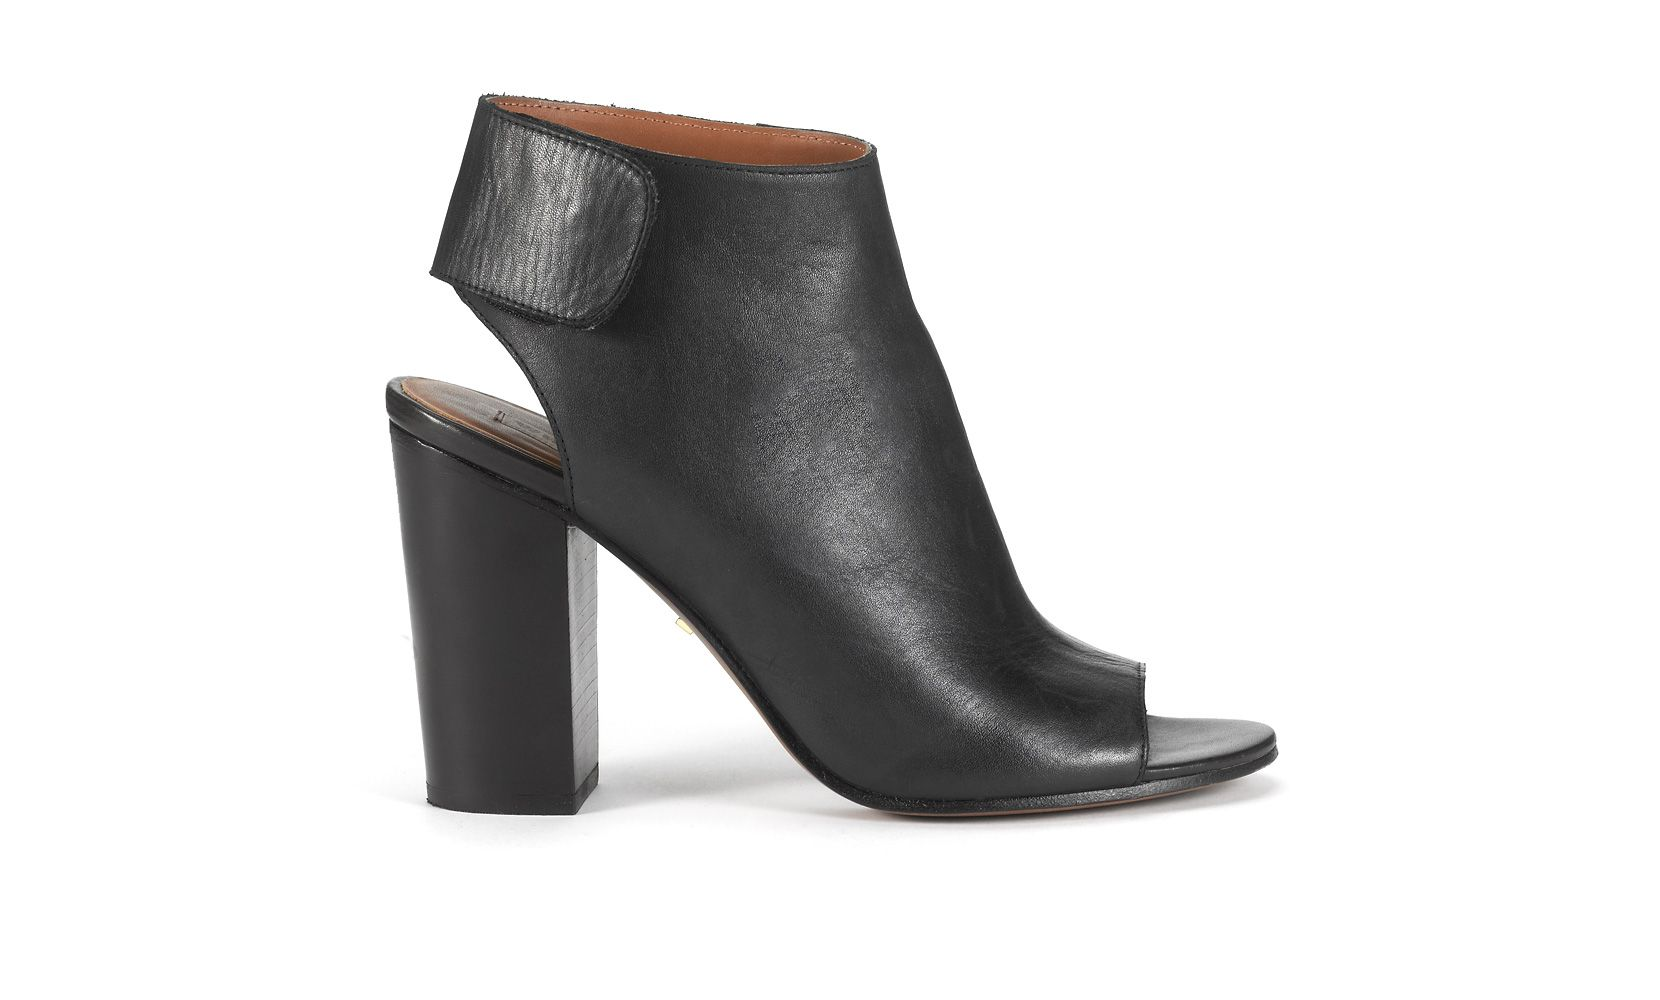 Ania open toe boot